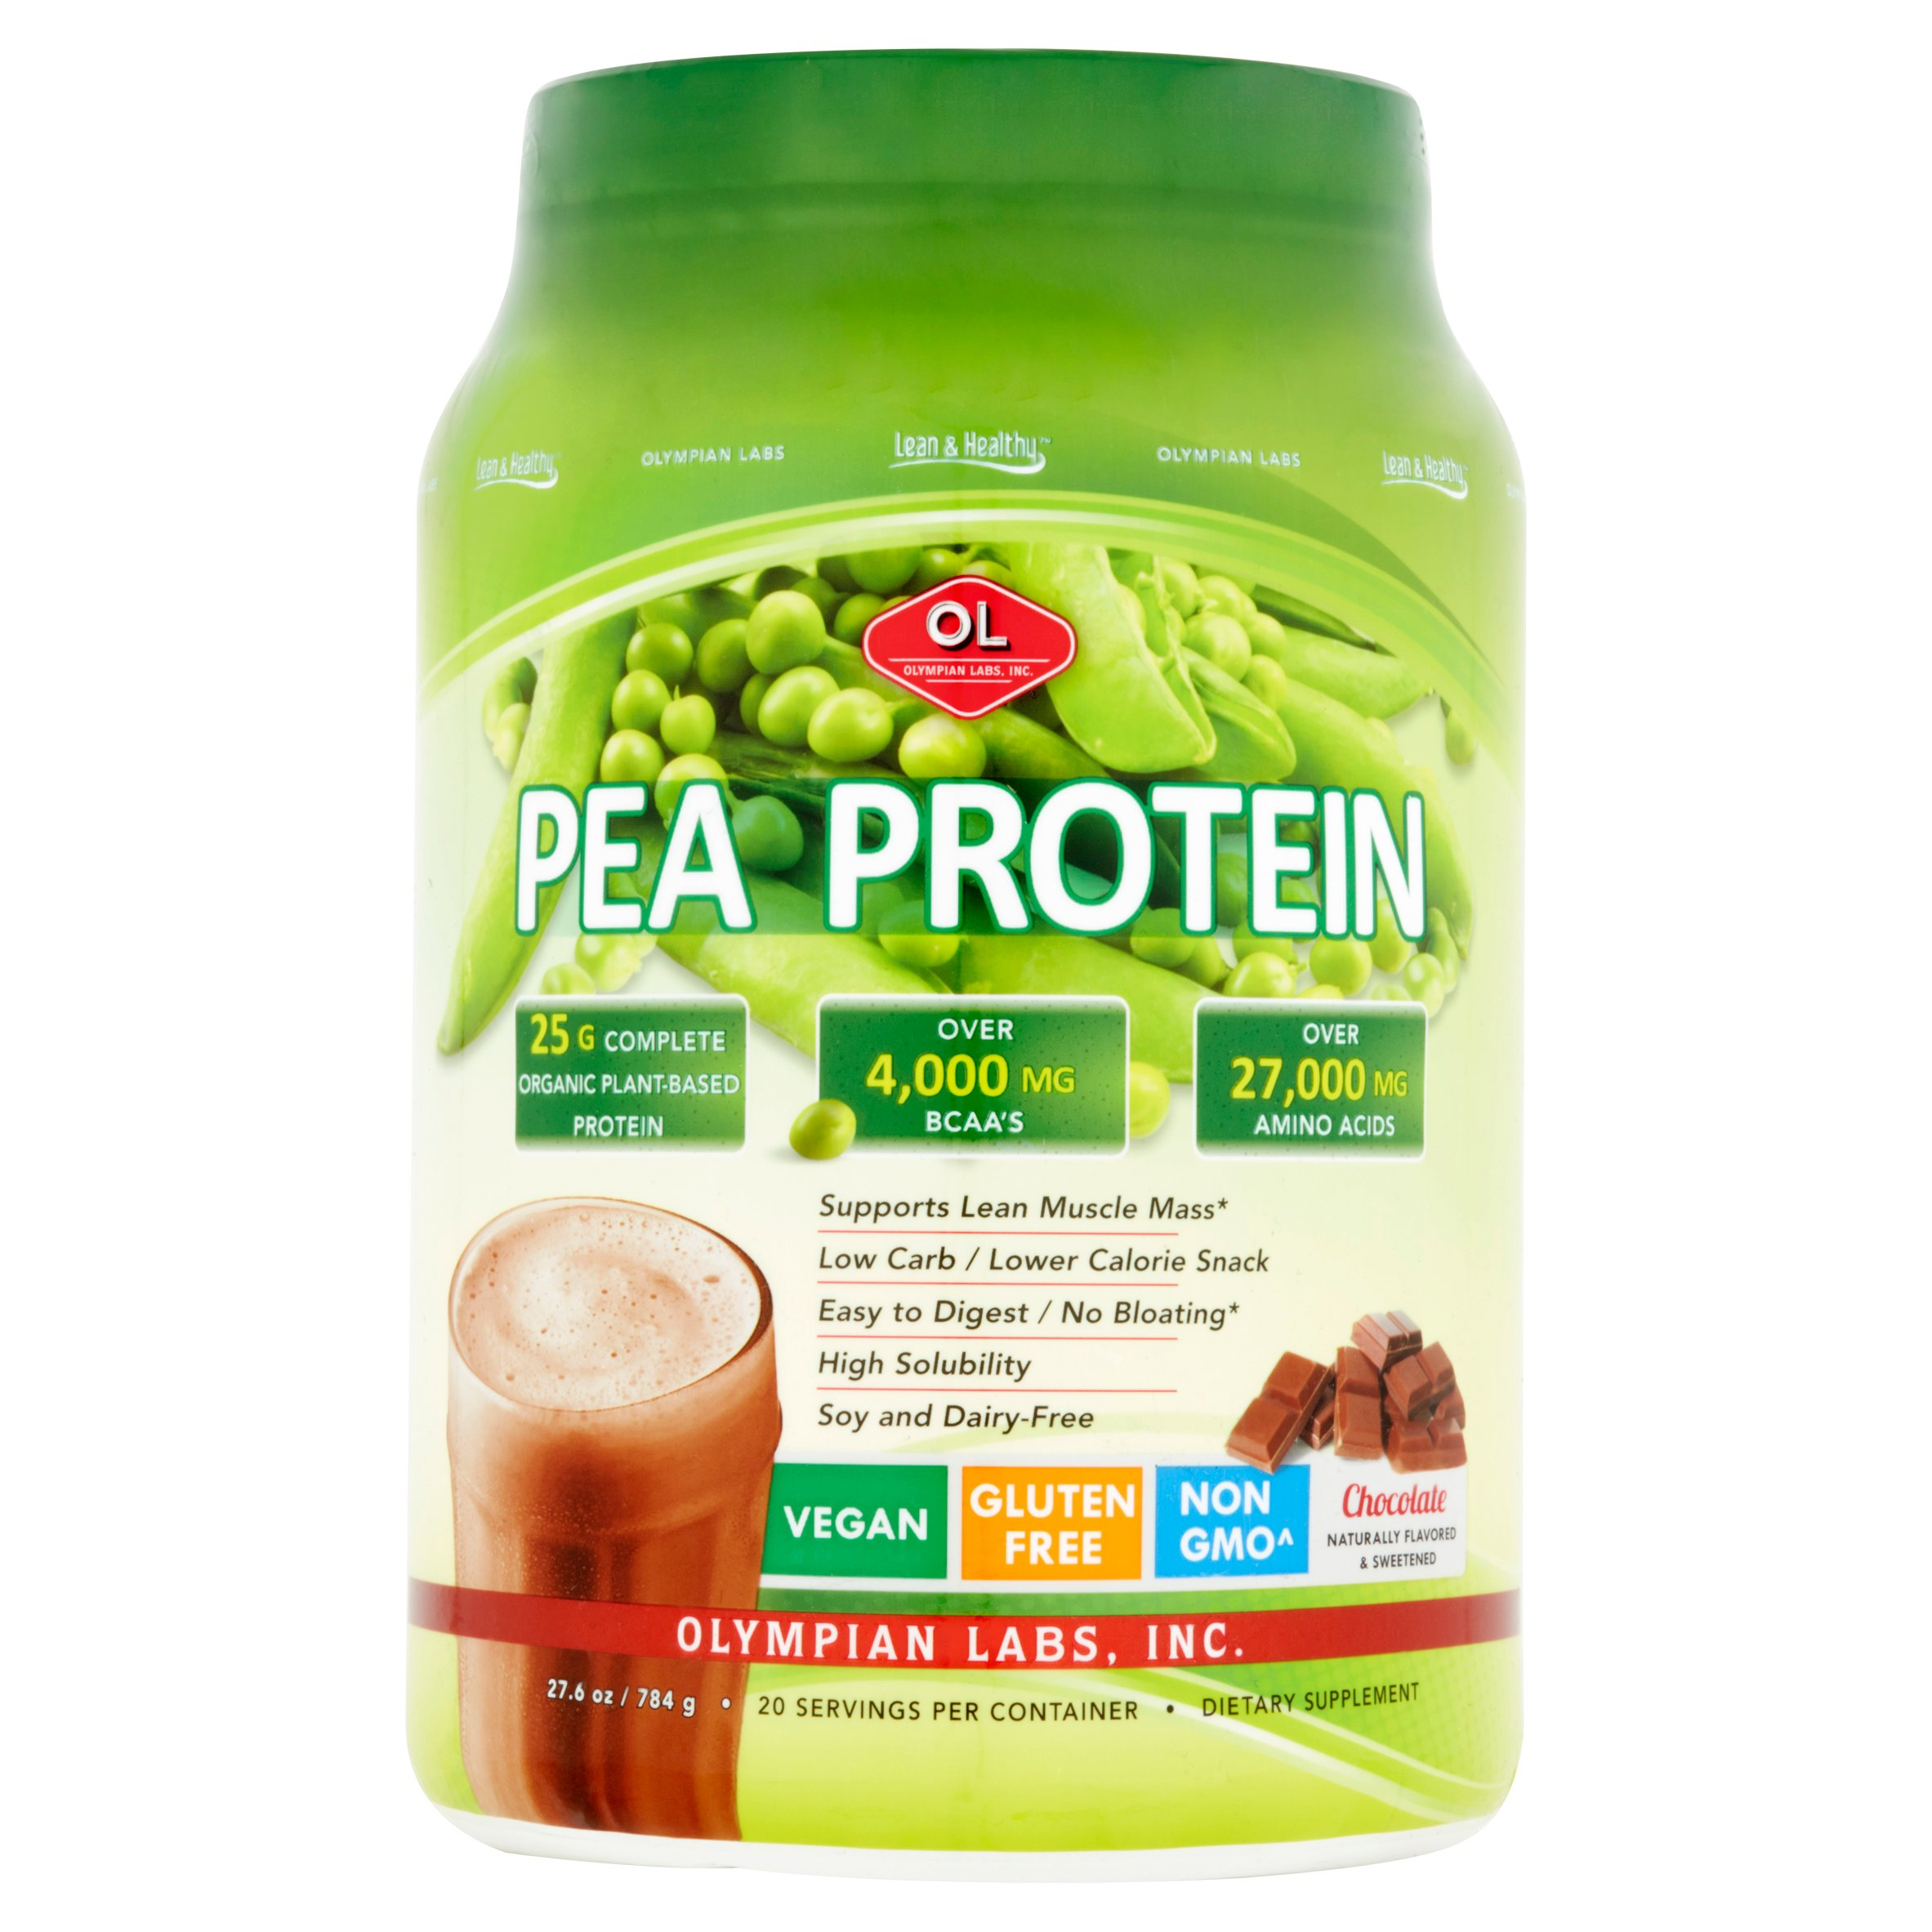 Olympian Labs Pea Protein Powder, Chocolate, 25g Protein, 1.8 Lb